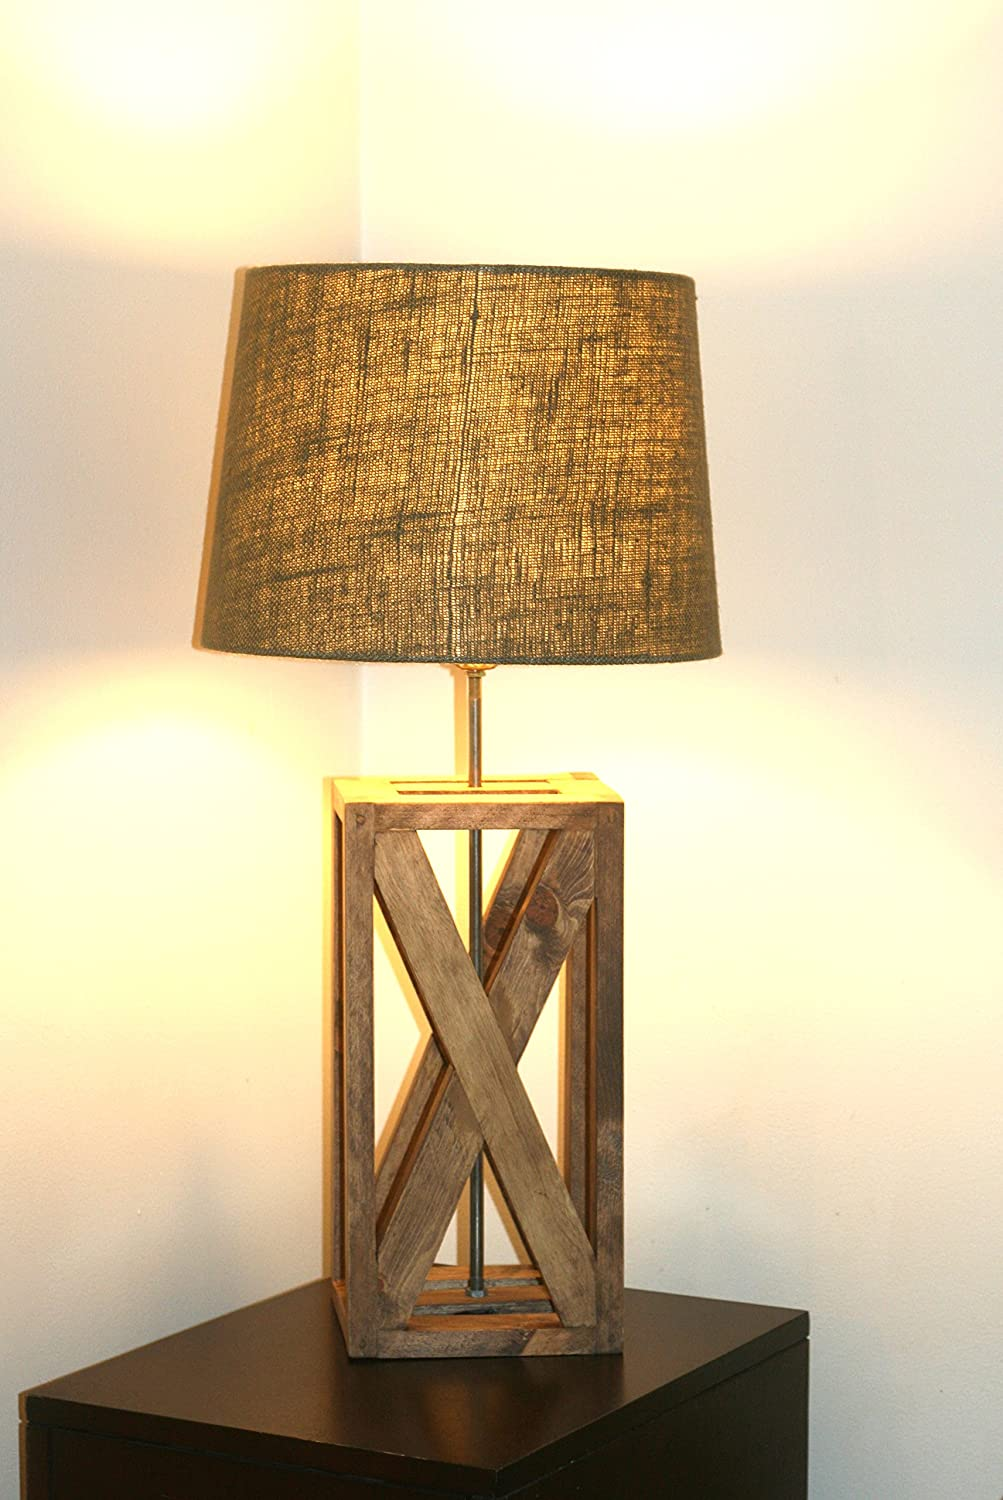 Amazon rustic geometric lamp rustic wooden lamp handmade amazon rustic geometric lamp rustic wooden lamp handmade wood lamp rustic x design table lamp geometric wood lamp hand crafted lighting lamp wood geotapseo Image collections